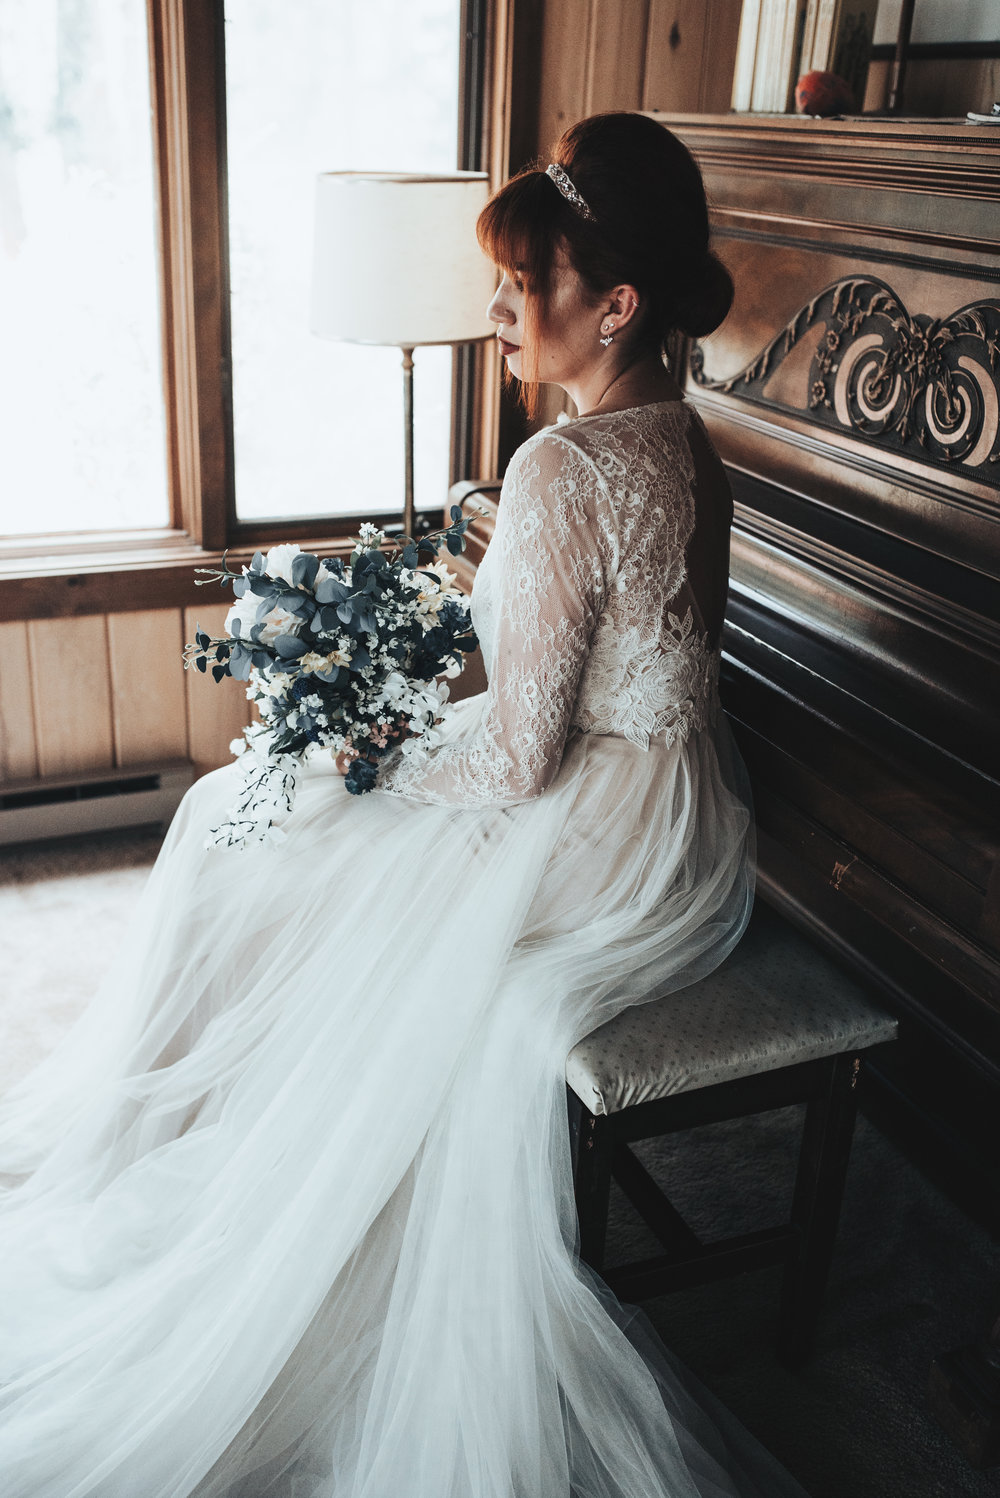 Bride Photos, Wisconsin Wedding, Boho Bride, Vintage Bride